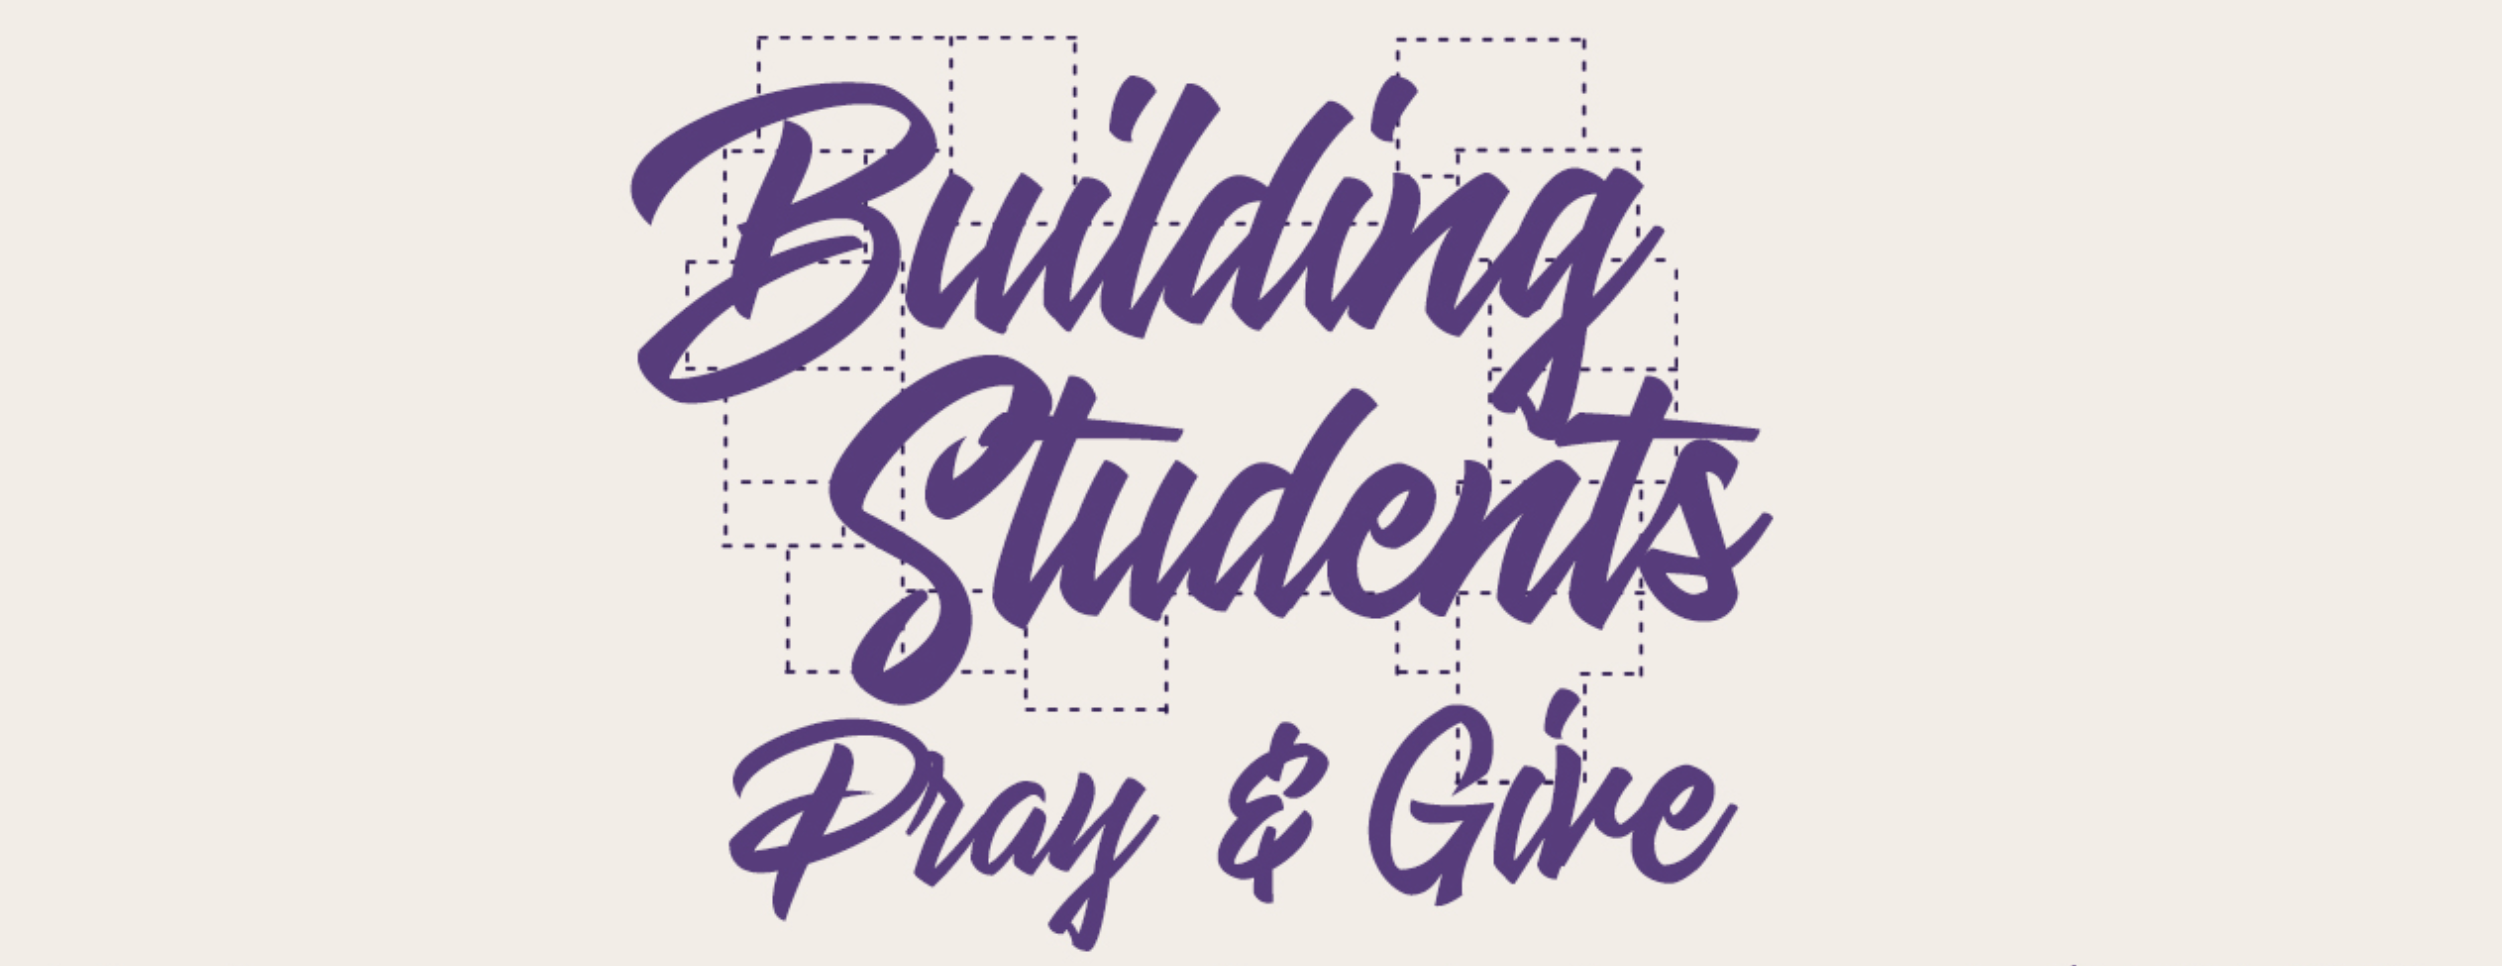 Building students campaign pray and give